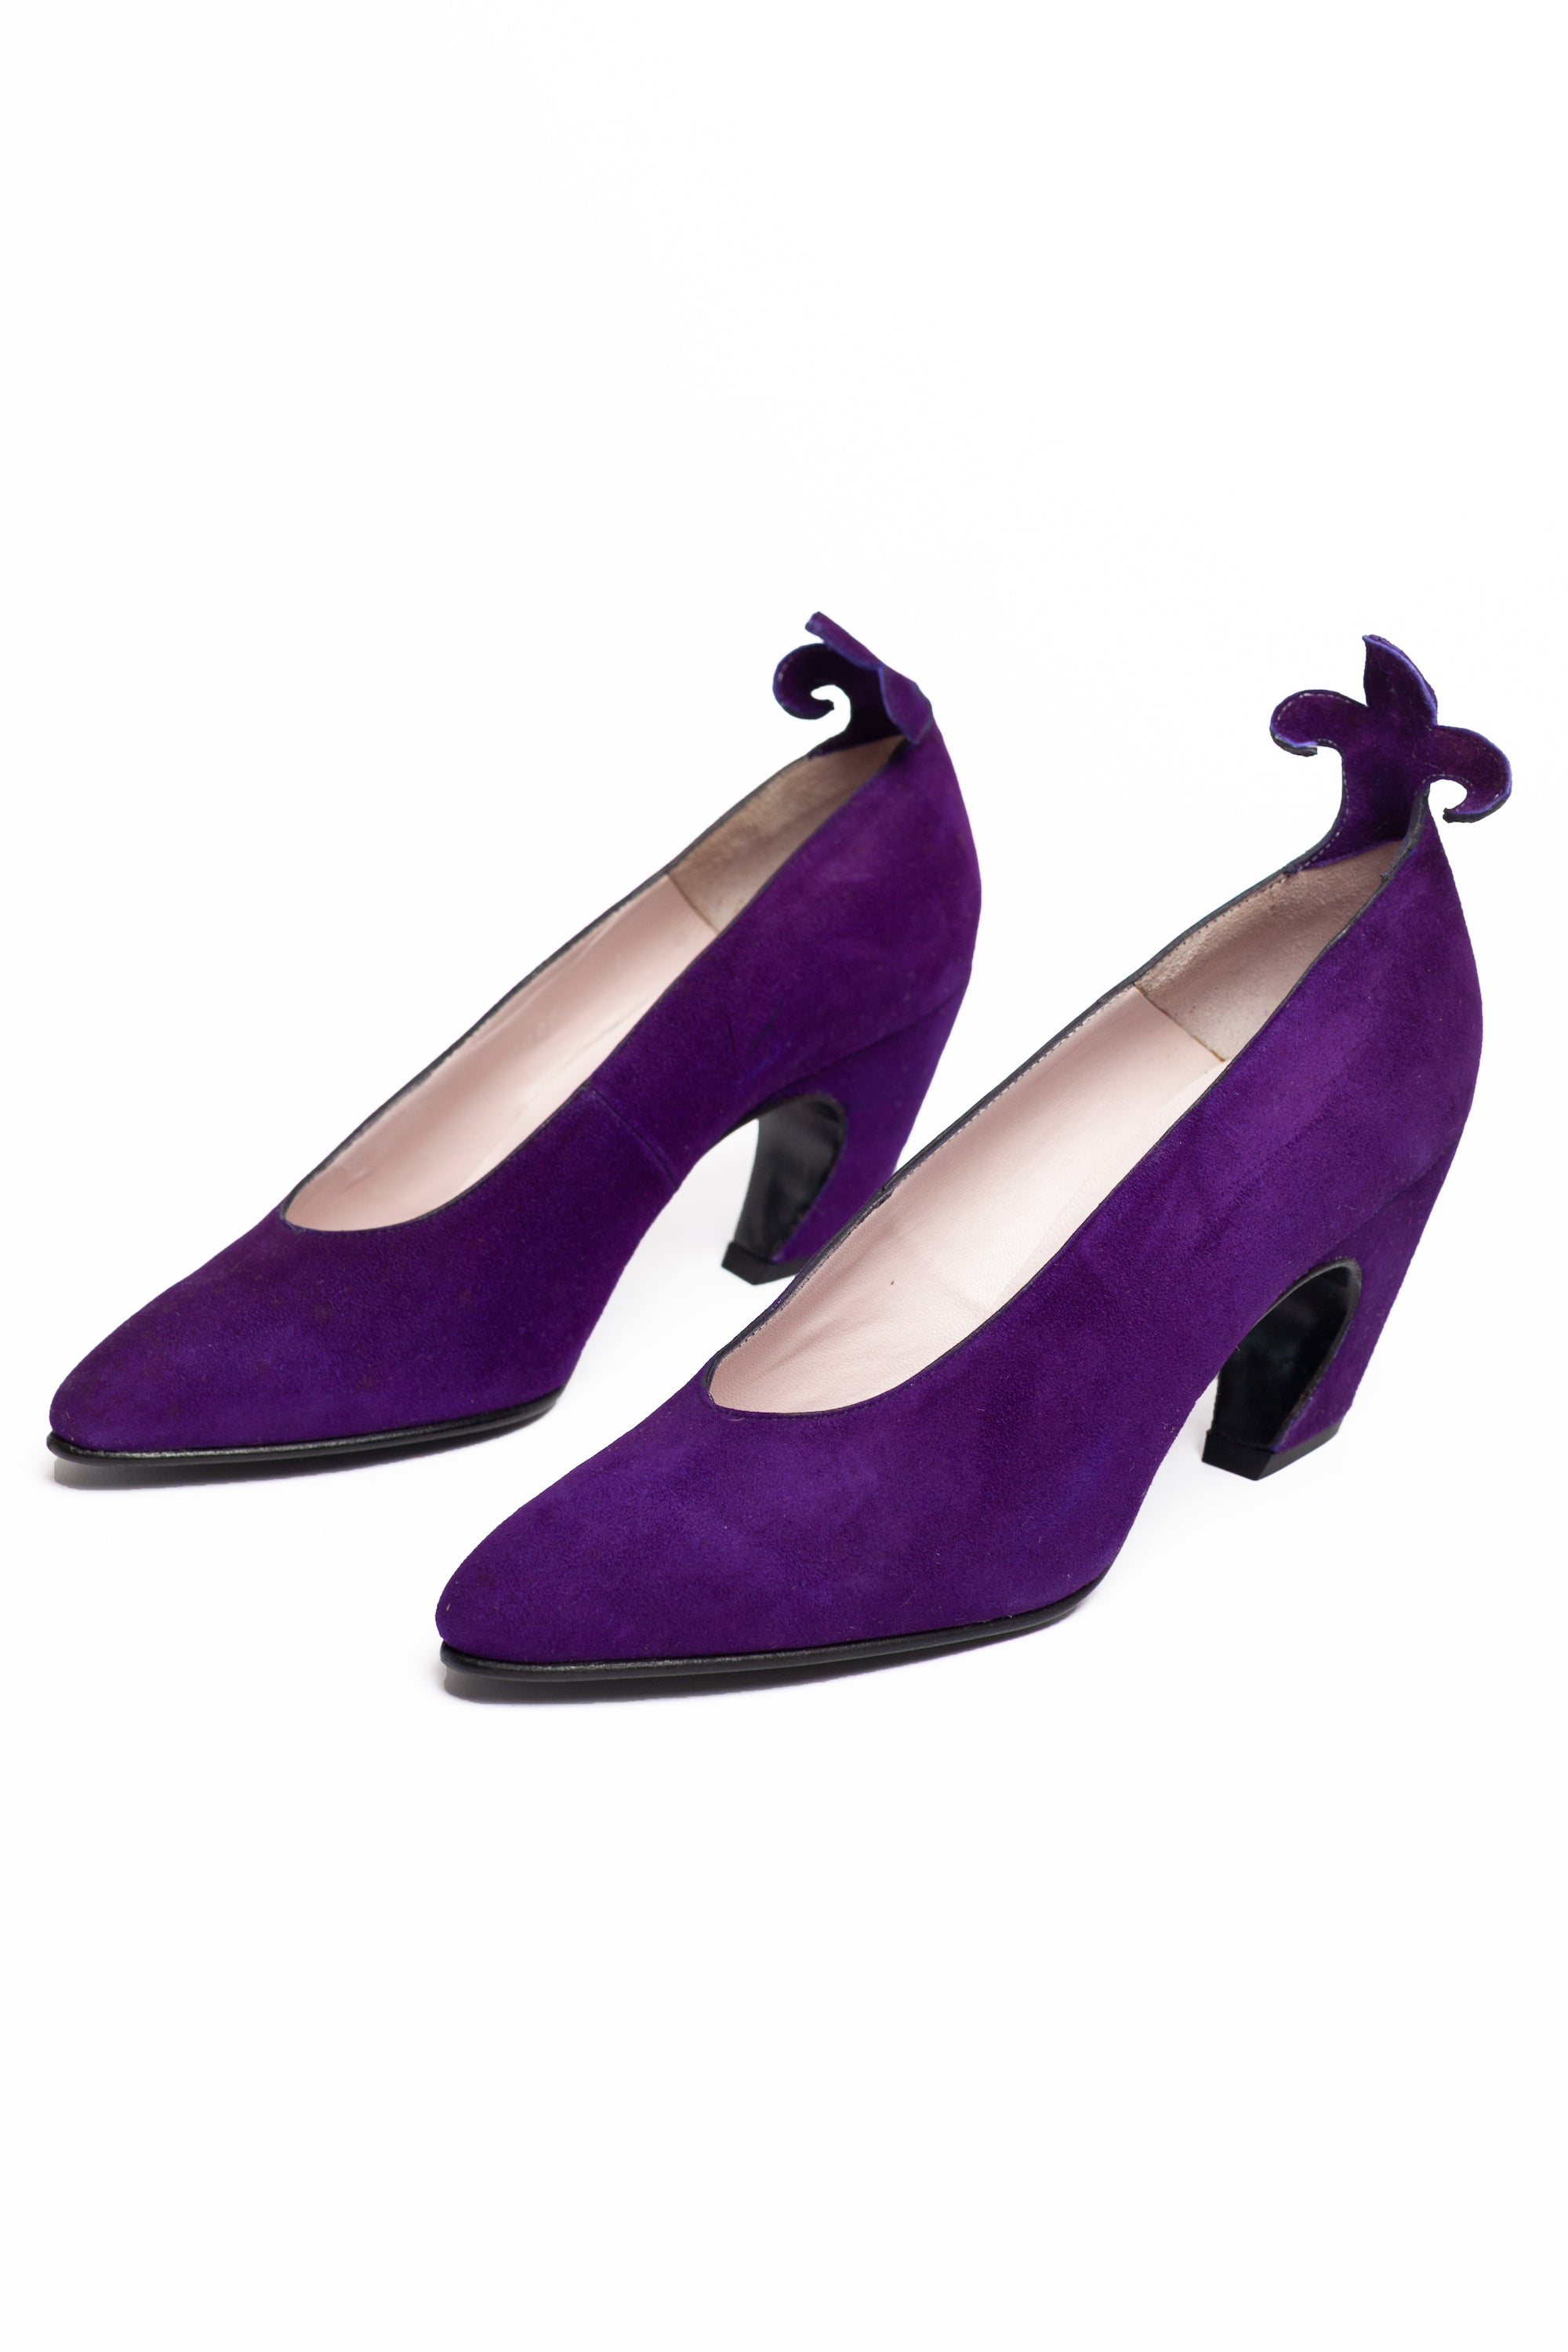 Maud Frizon <br> 1980's Miss Maud curved heel suede pumps